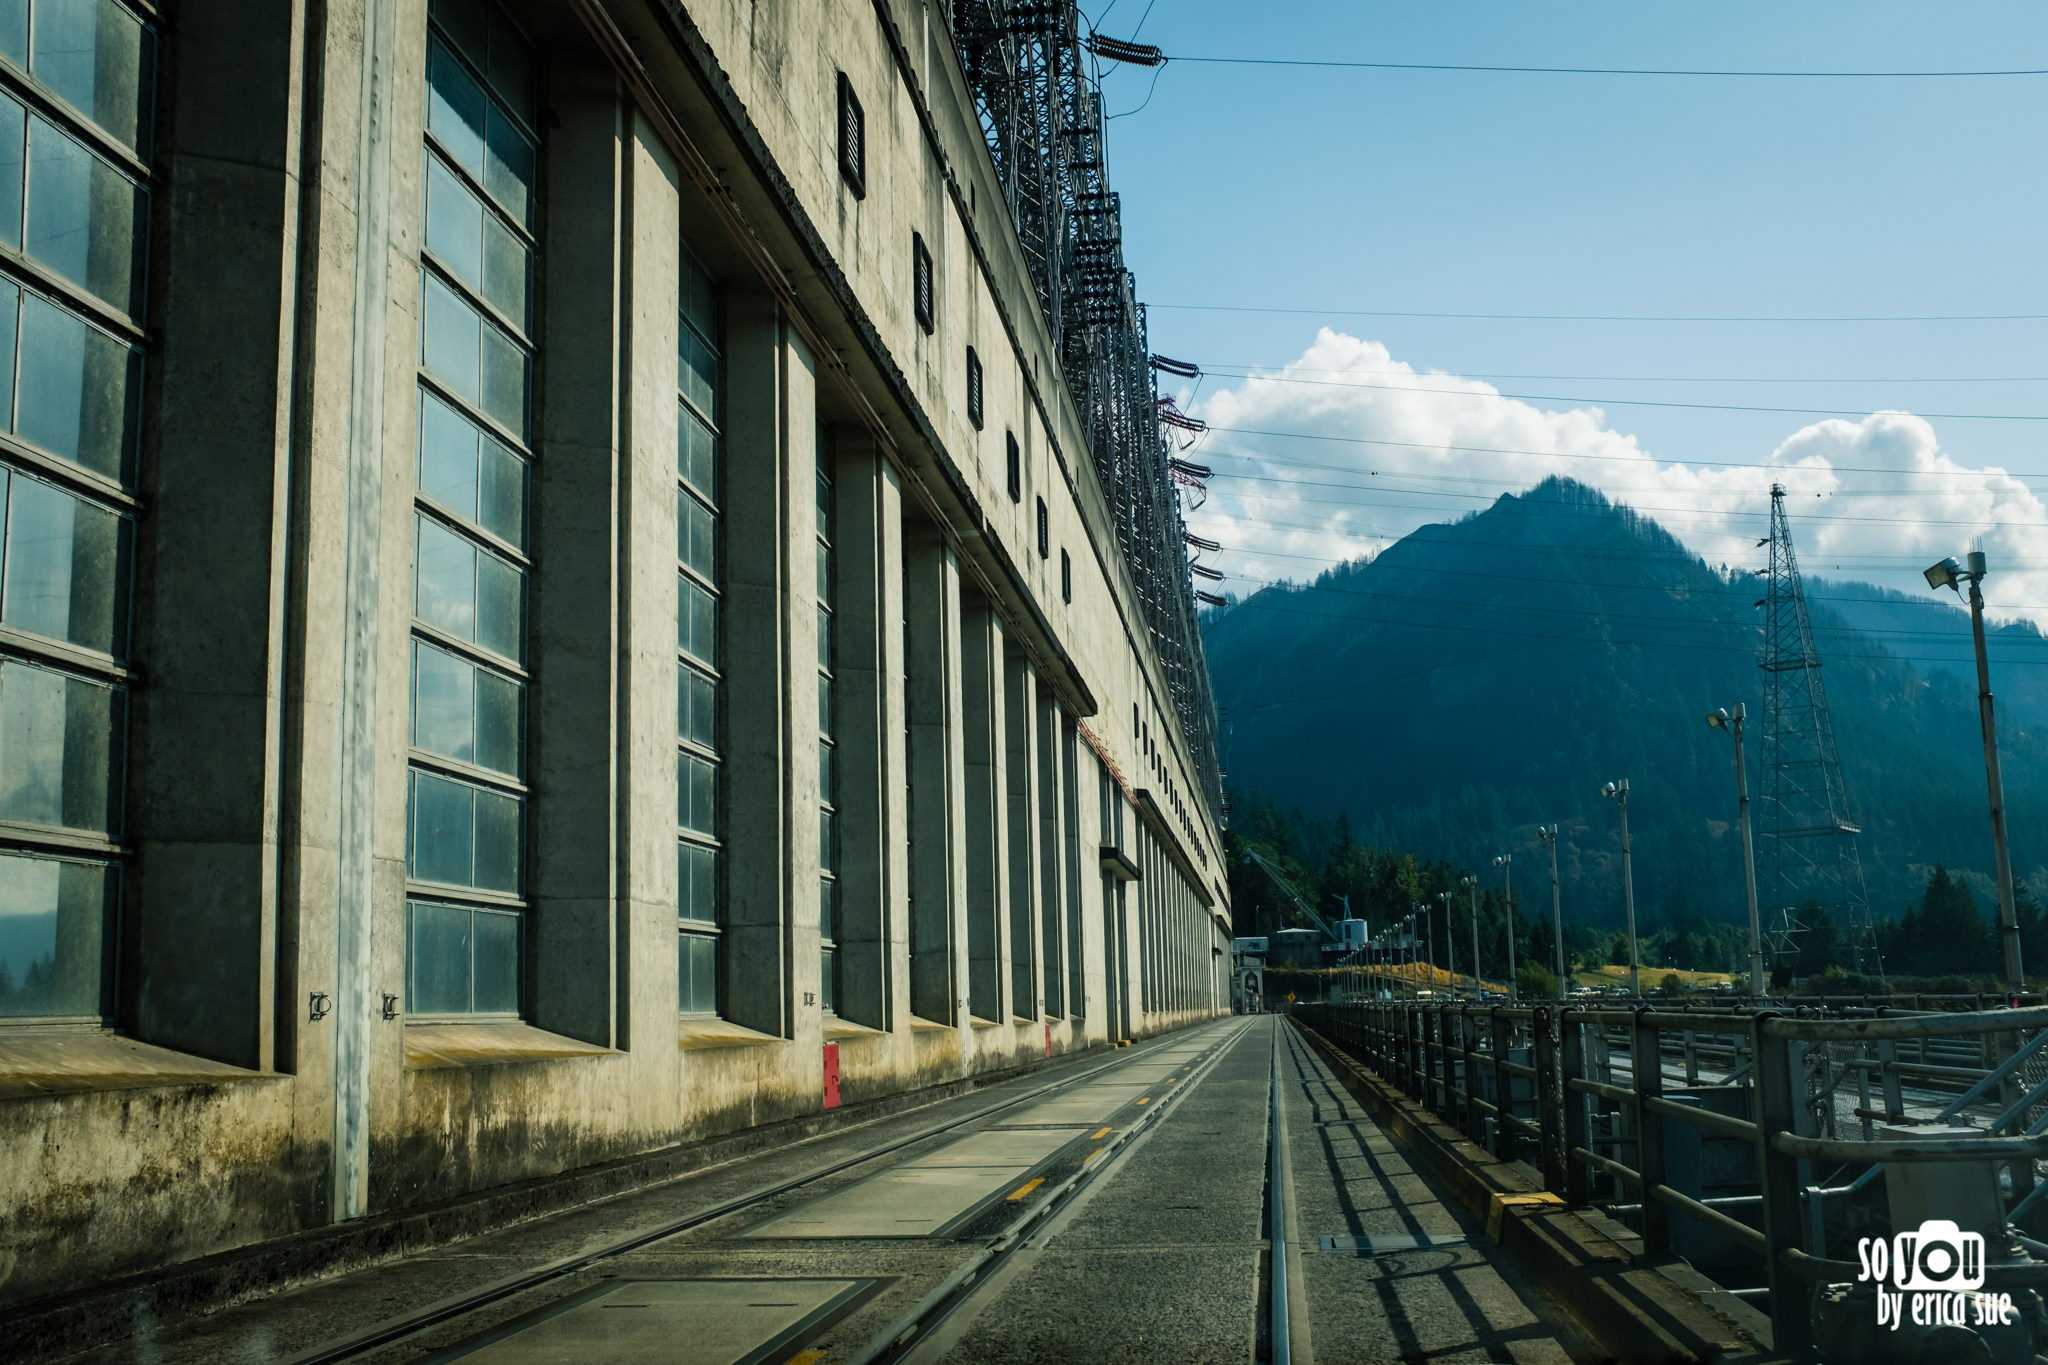 so-you-by-erica-sue-portland-things-to-do-multnomah-falls-bonneville-dam-3773.JPG